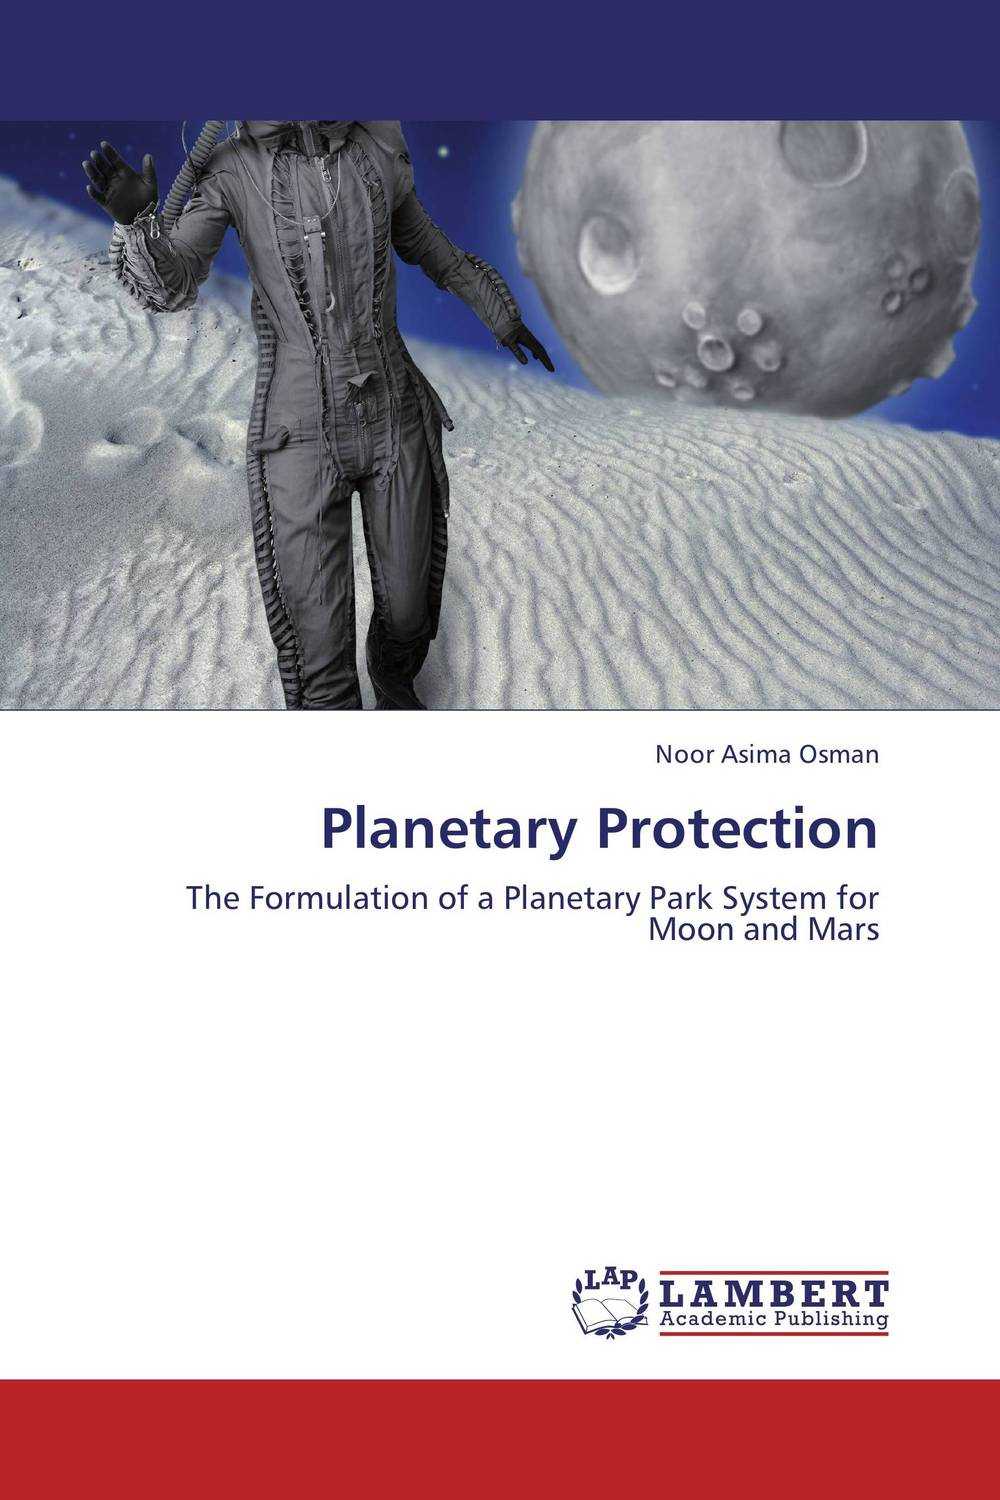 Planetary Protection from the earth to the moon